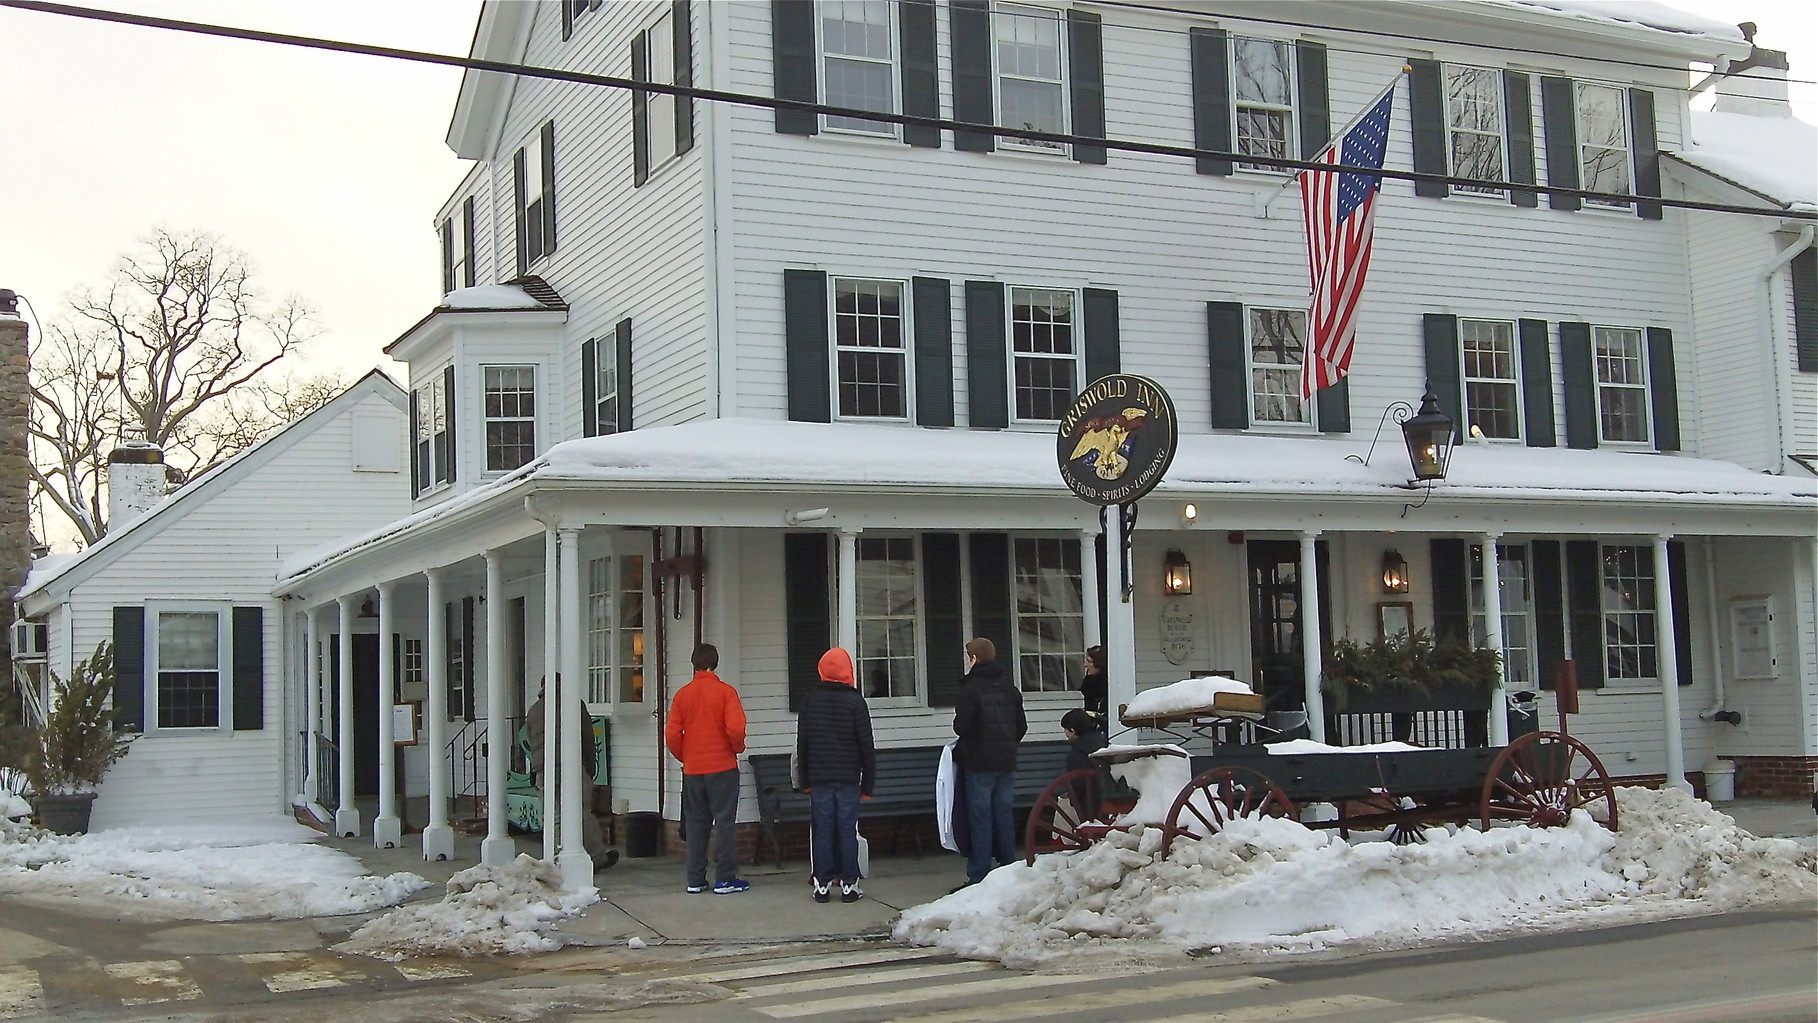 The Griswold Inn, in continuous operation as an inn since 1776, where the party was held.